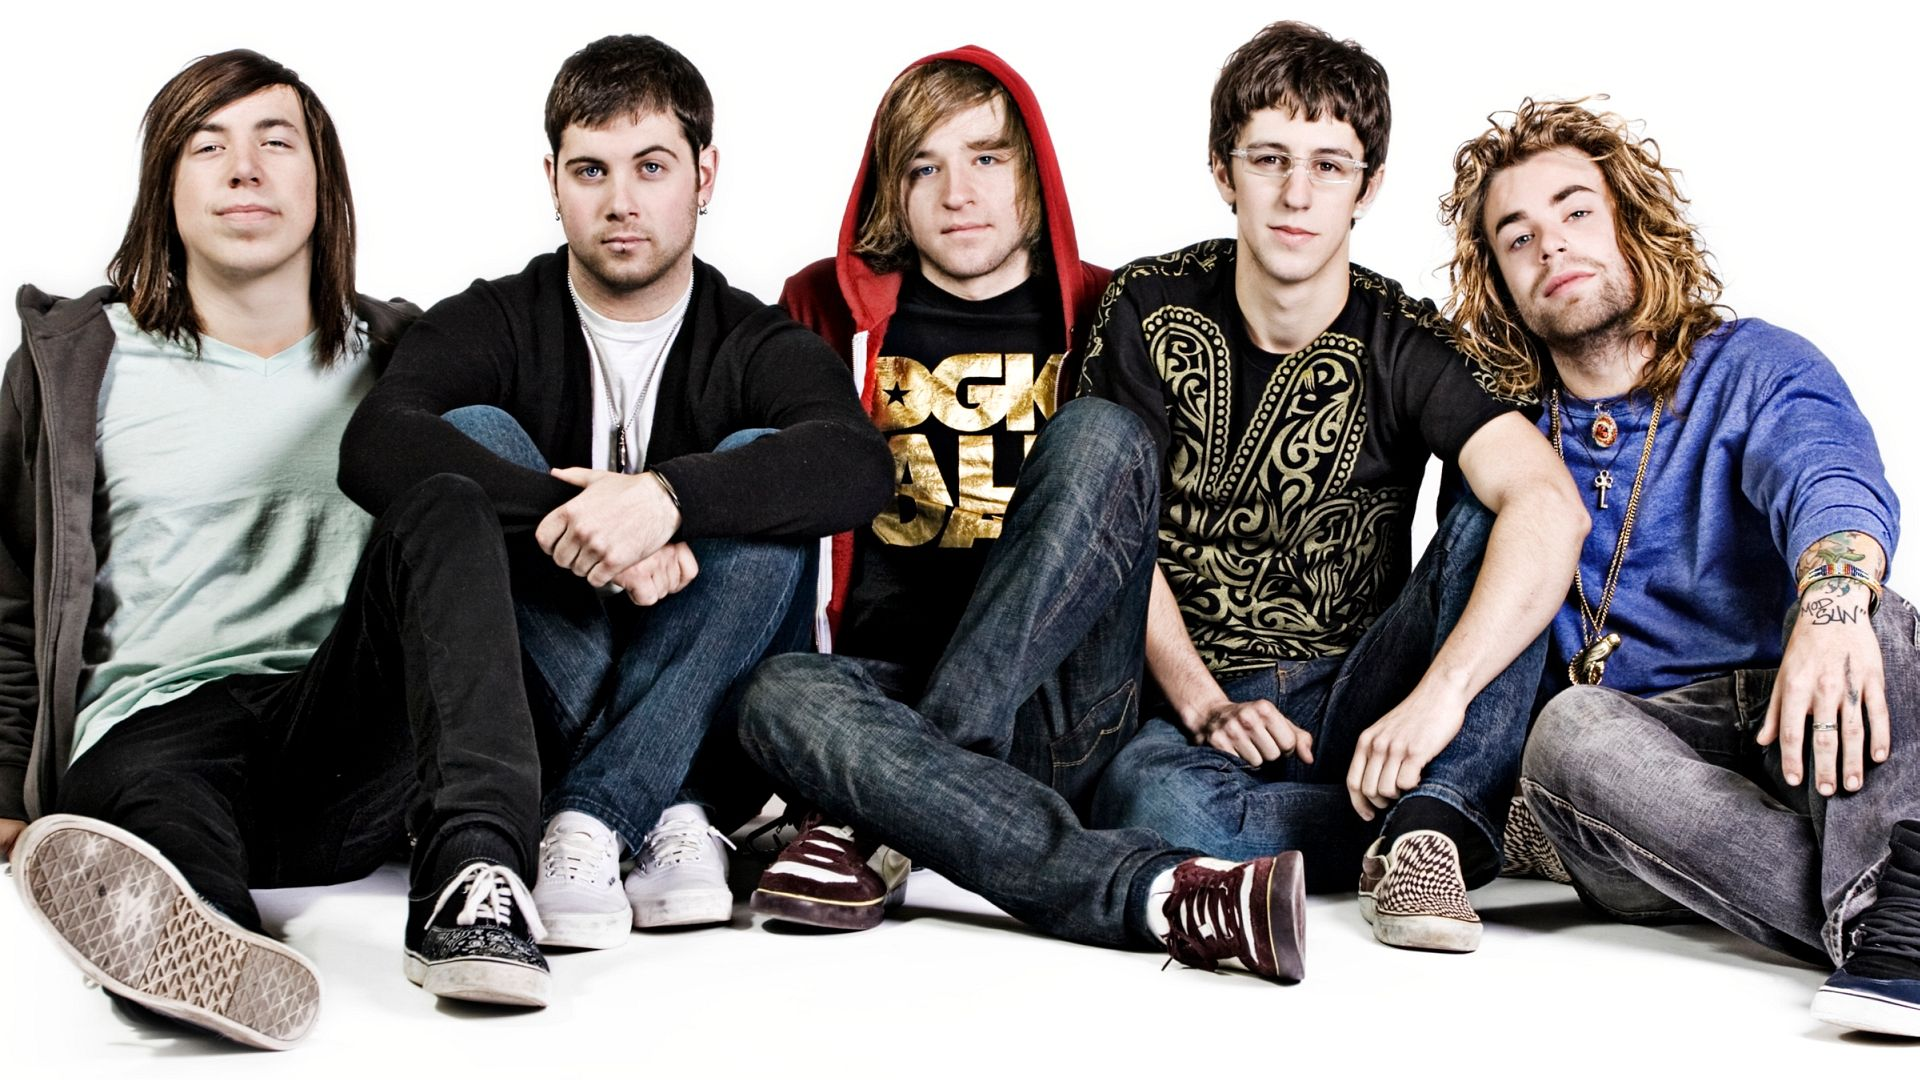 The Group Bring Me The Horizon